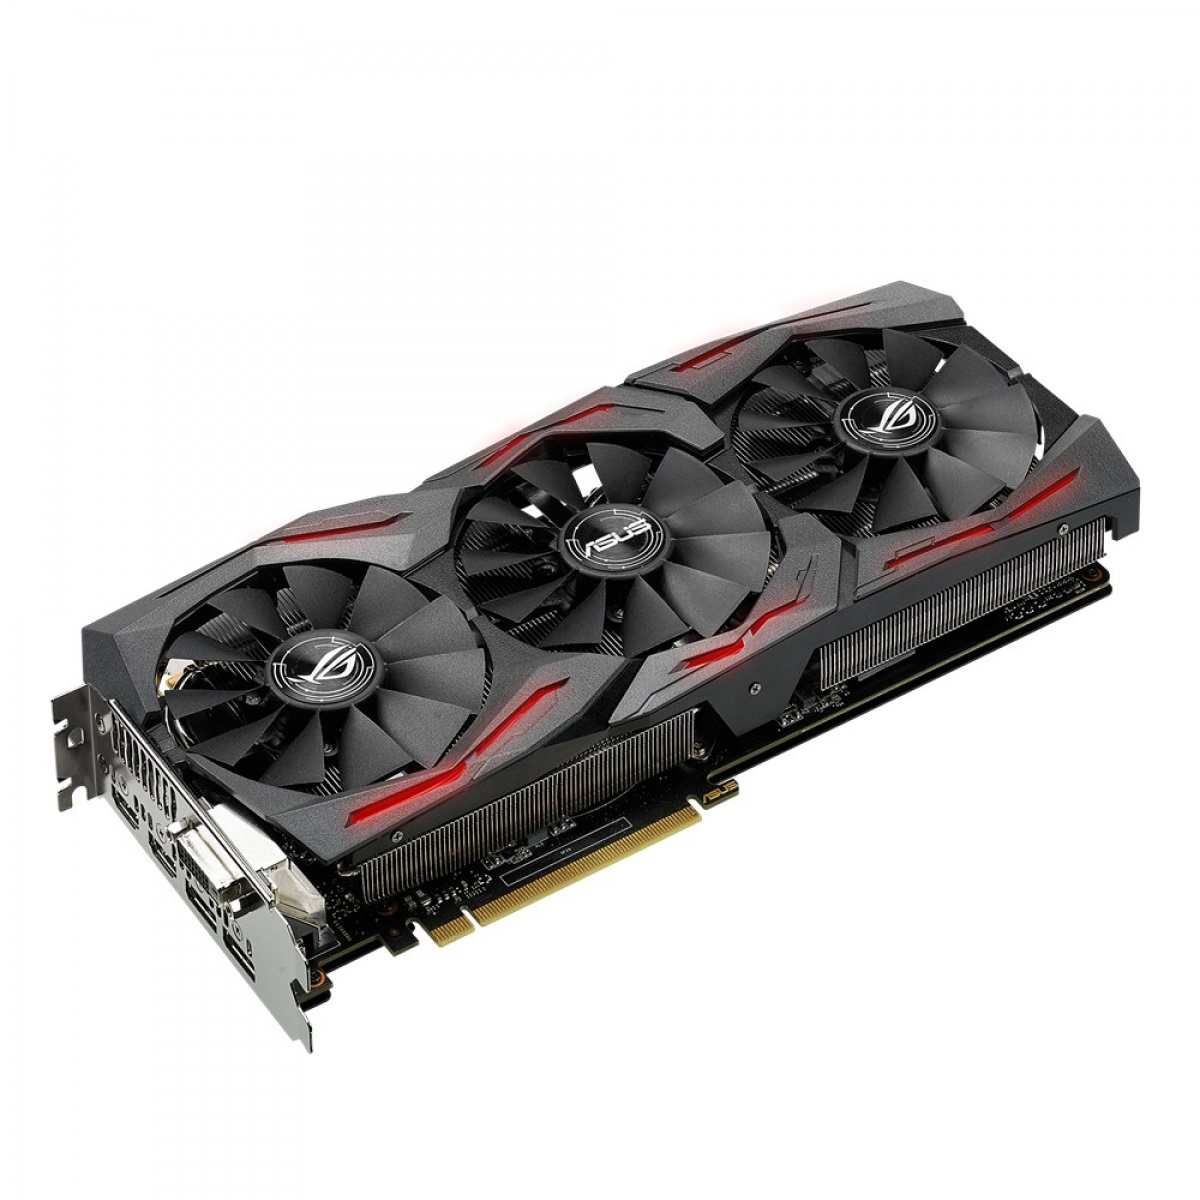 Placa de Vídeo Geforce 6GB Strix GTX1060-06G-Gaming 90YV09Q0-M0NA00 - Asus